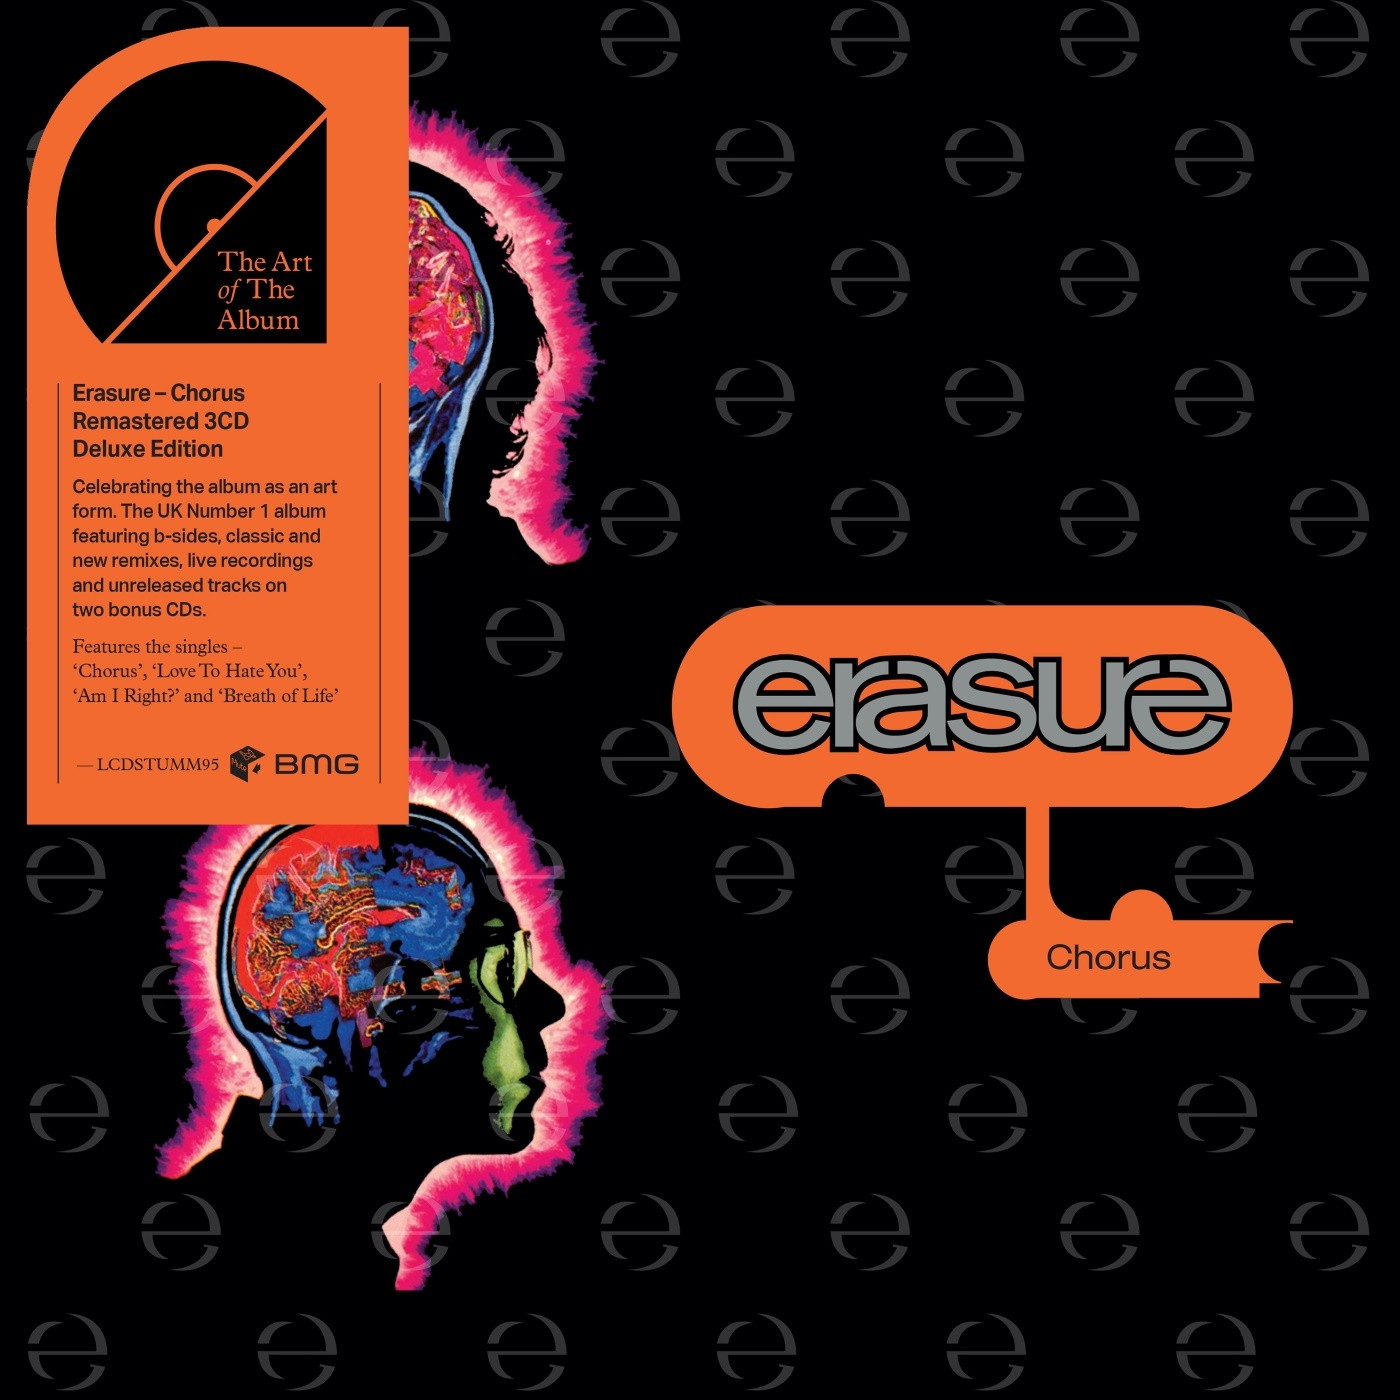 Erasure - Chorus (3CD Deluxe Edition) - 3CD